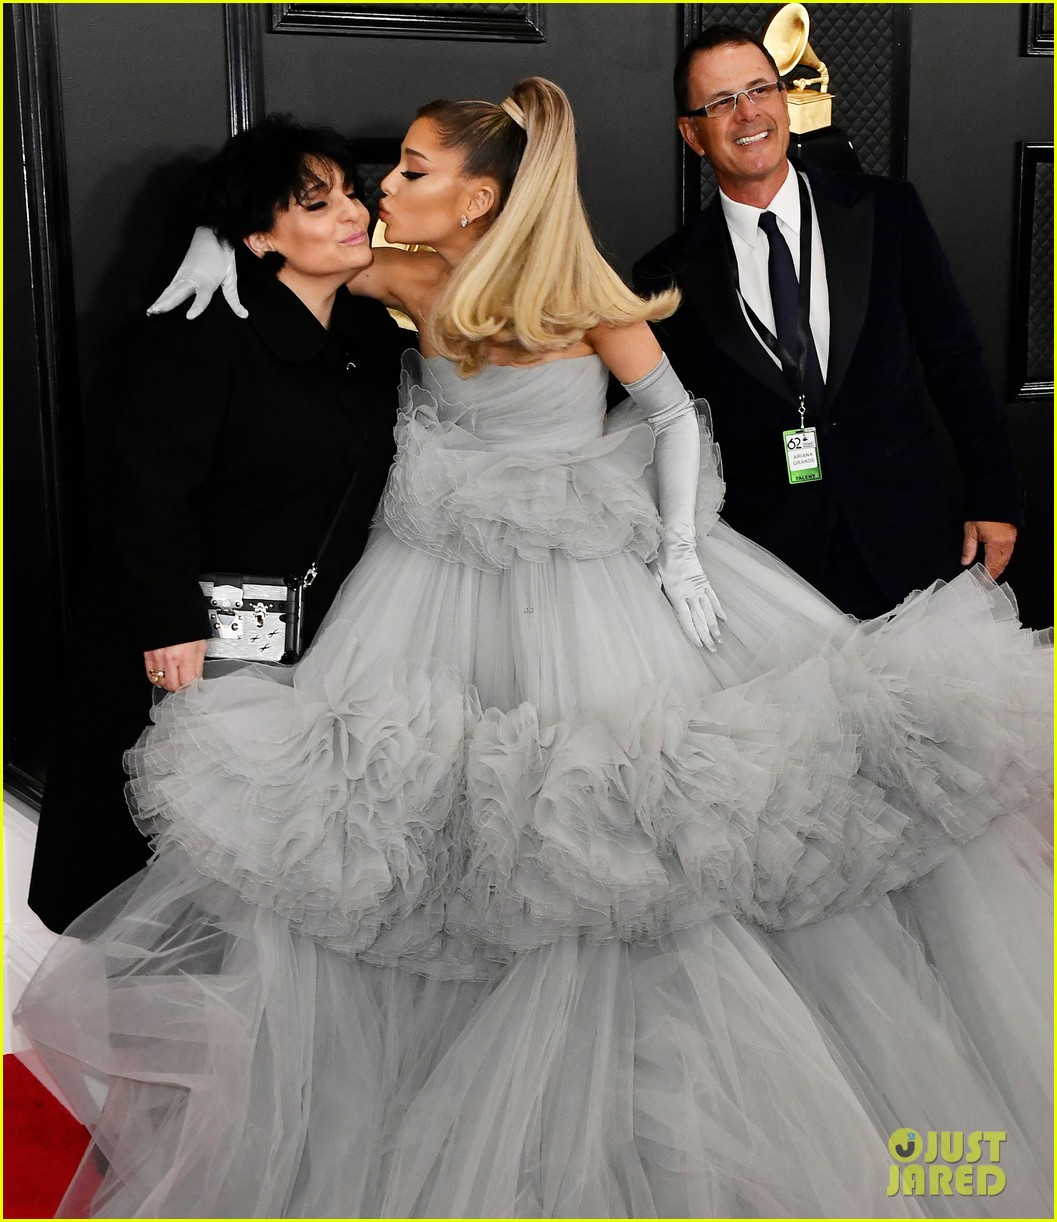 ariana grande wows in big ball gown on grammys 2020 red carpet photo 4423072 2020 grammys ariana grande edward butera grammys joan grande pictures just jared just jared